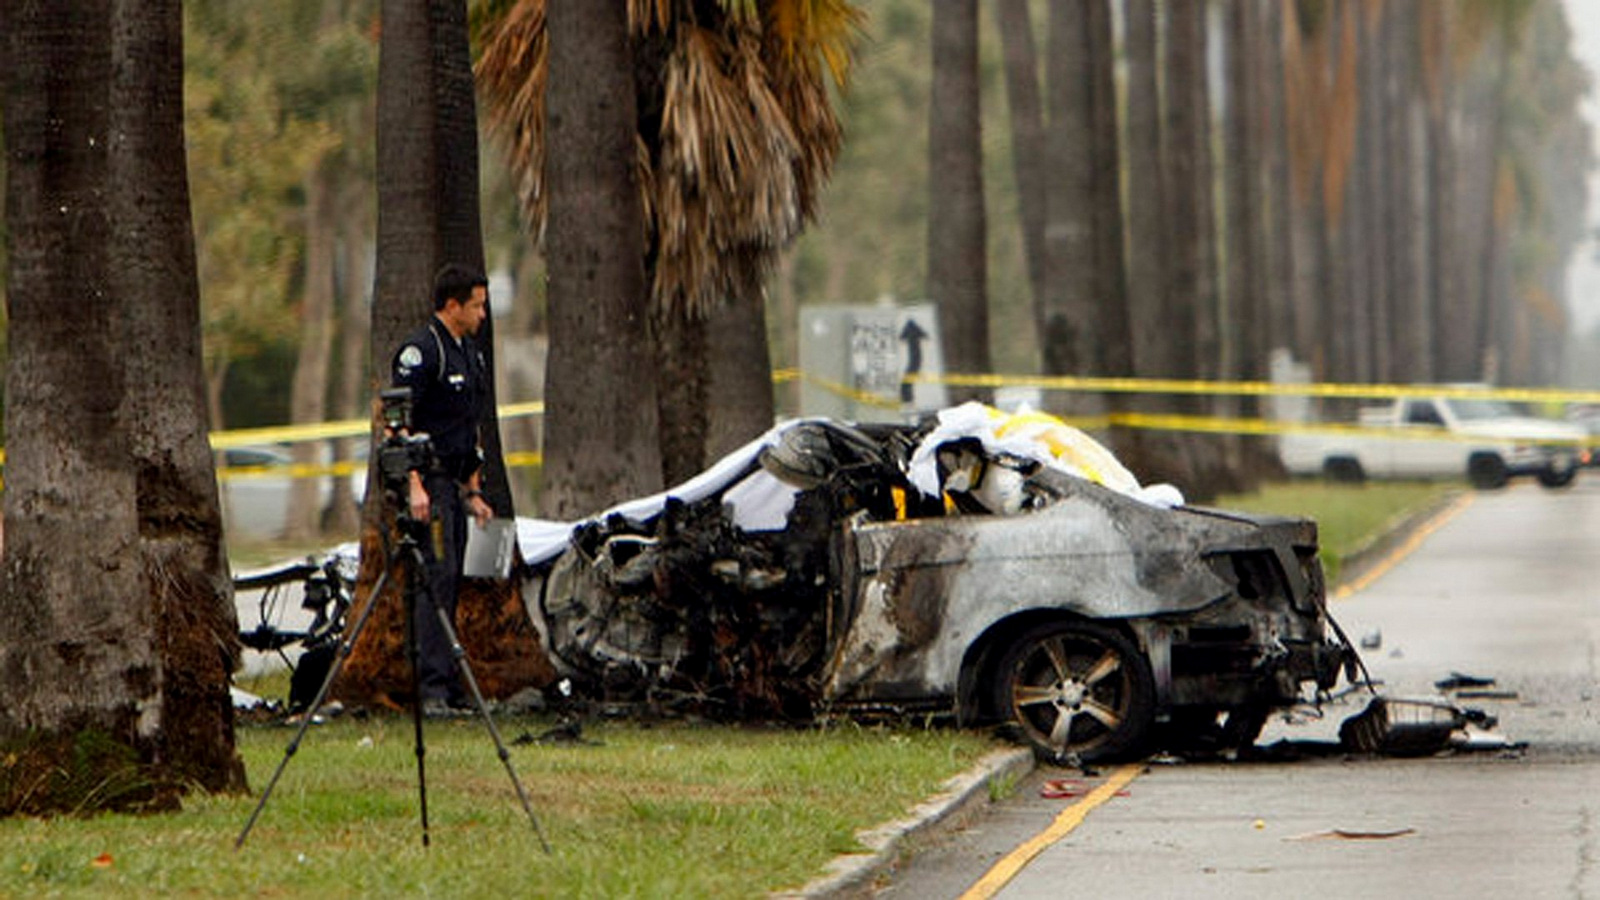 Michael Hastings crash